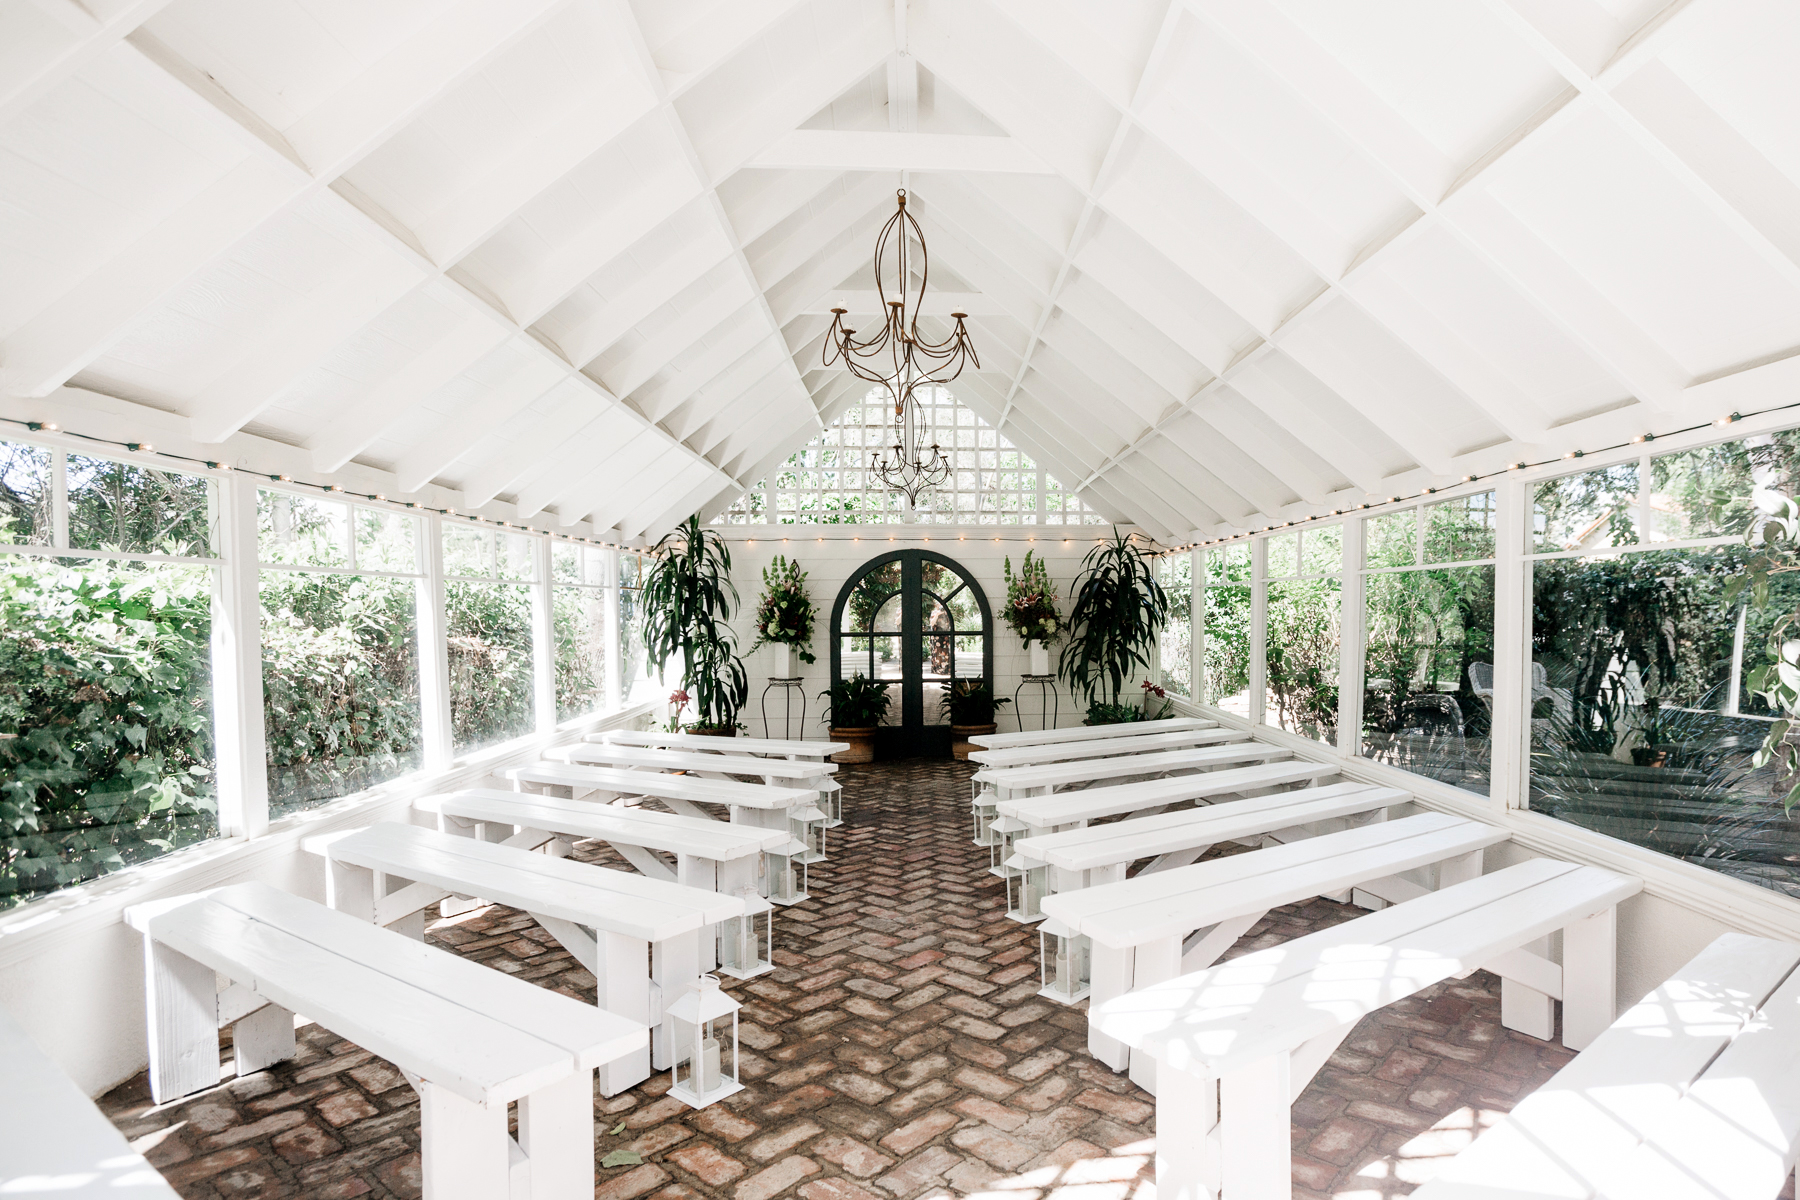 Orlando Wedding Venues The Most Beautiful Places To Tie The Knot